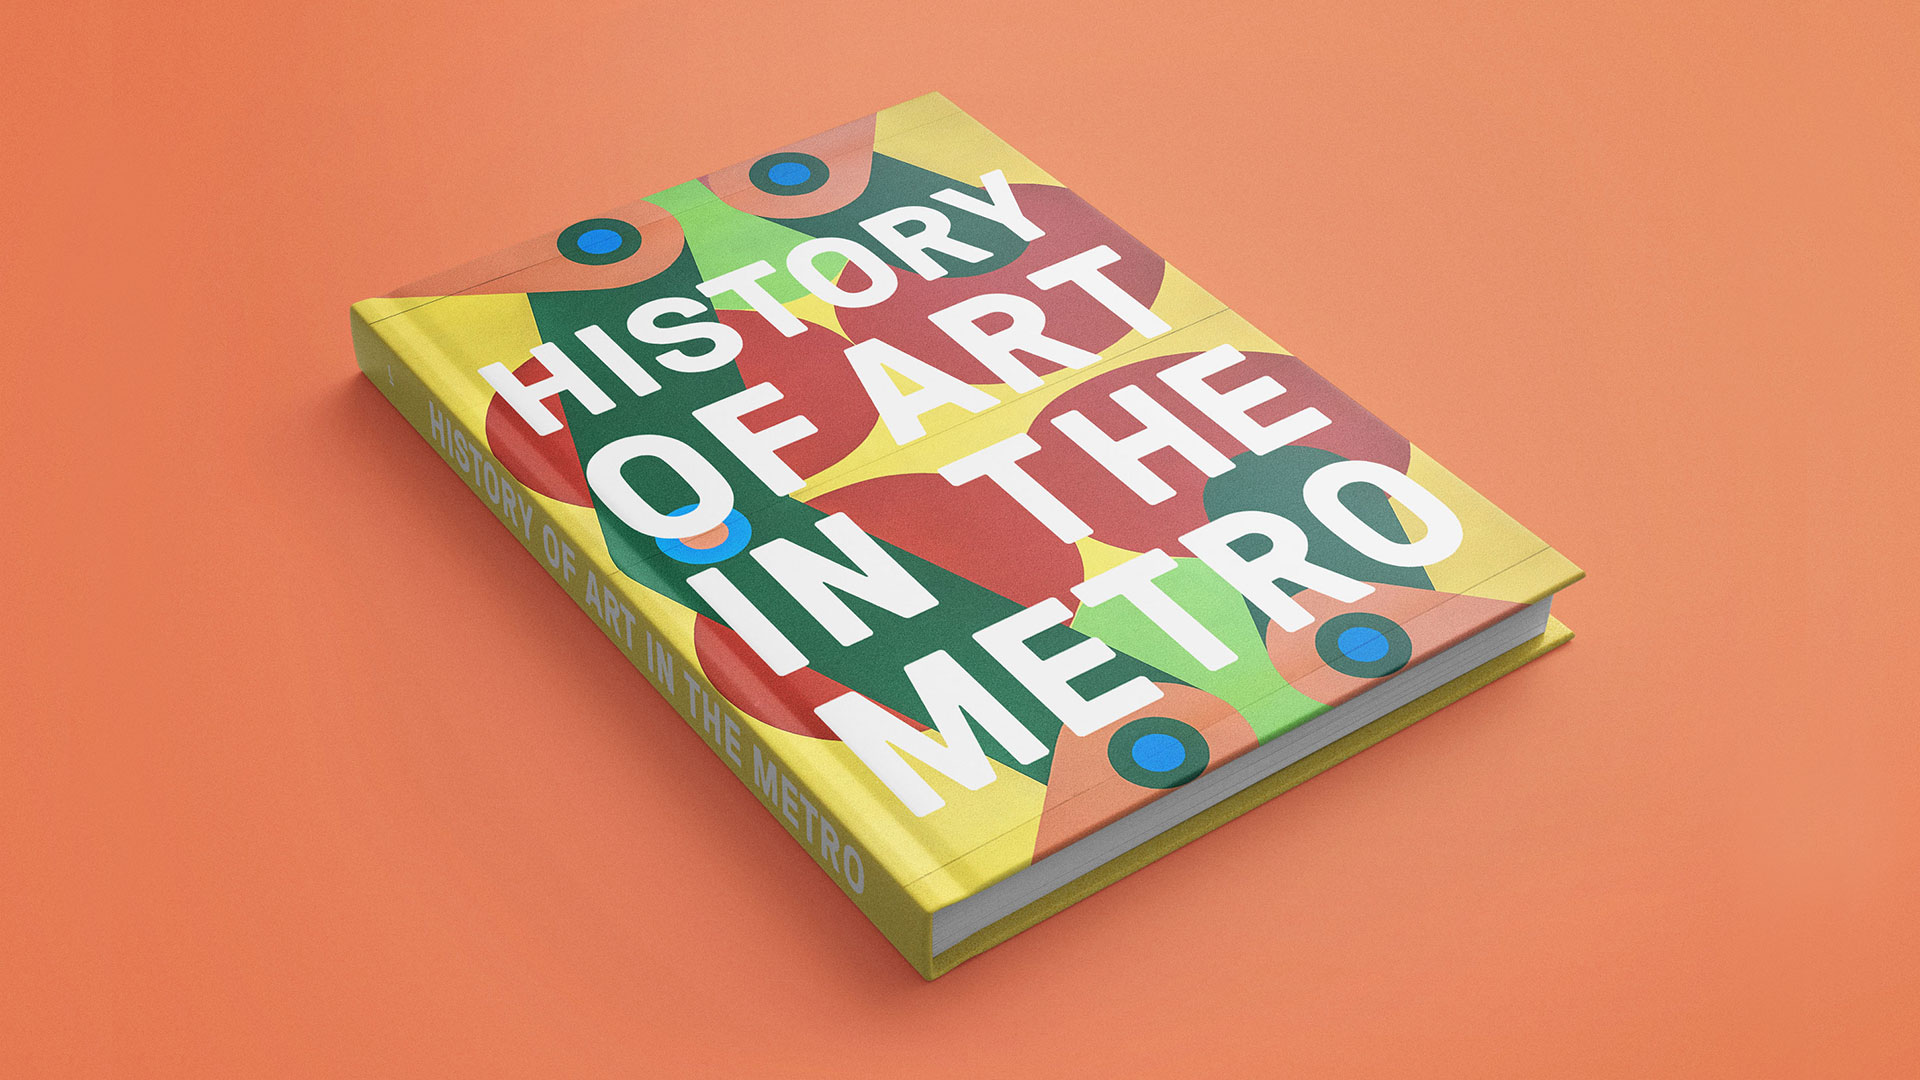 History of Art in the Metro Book Design